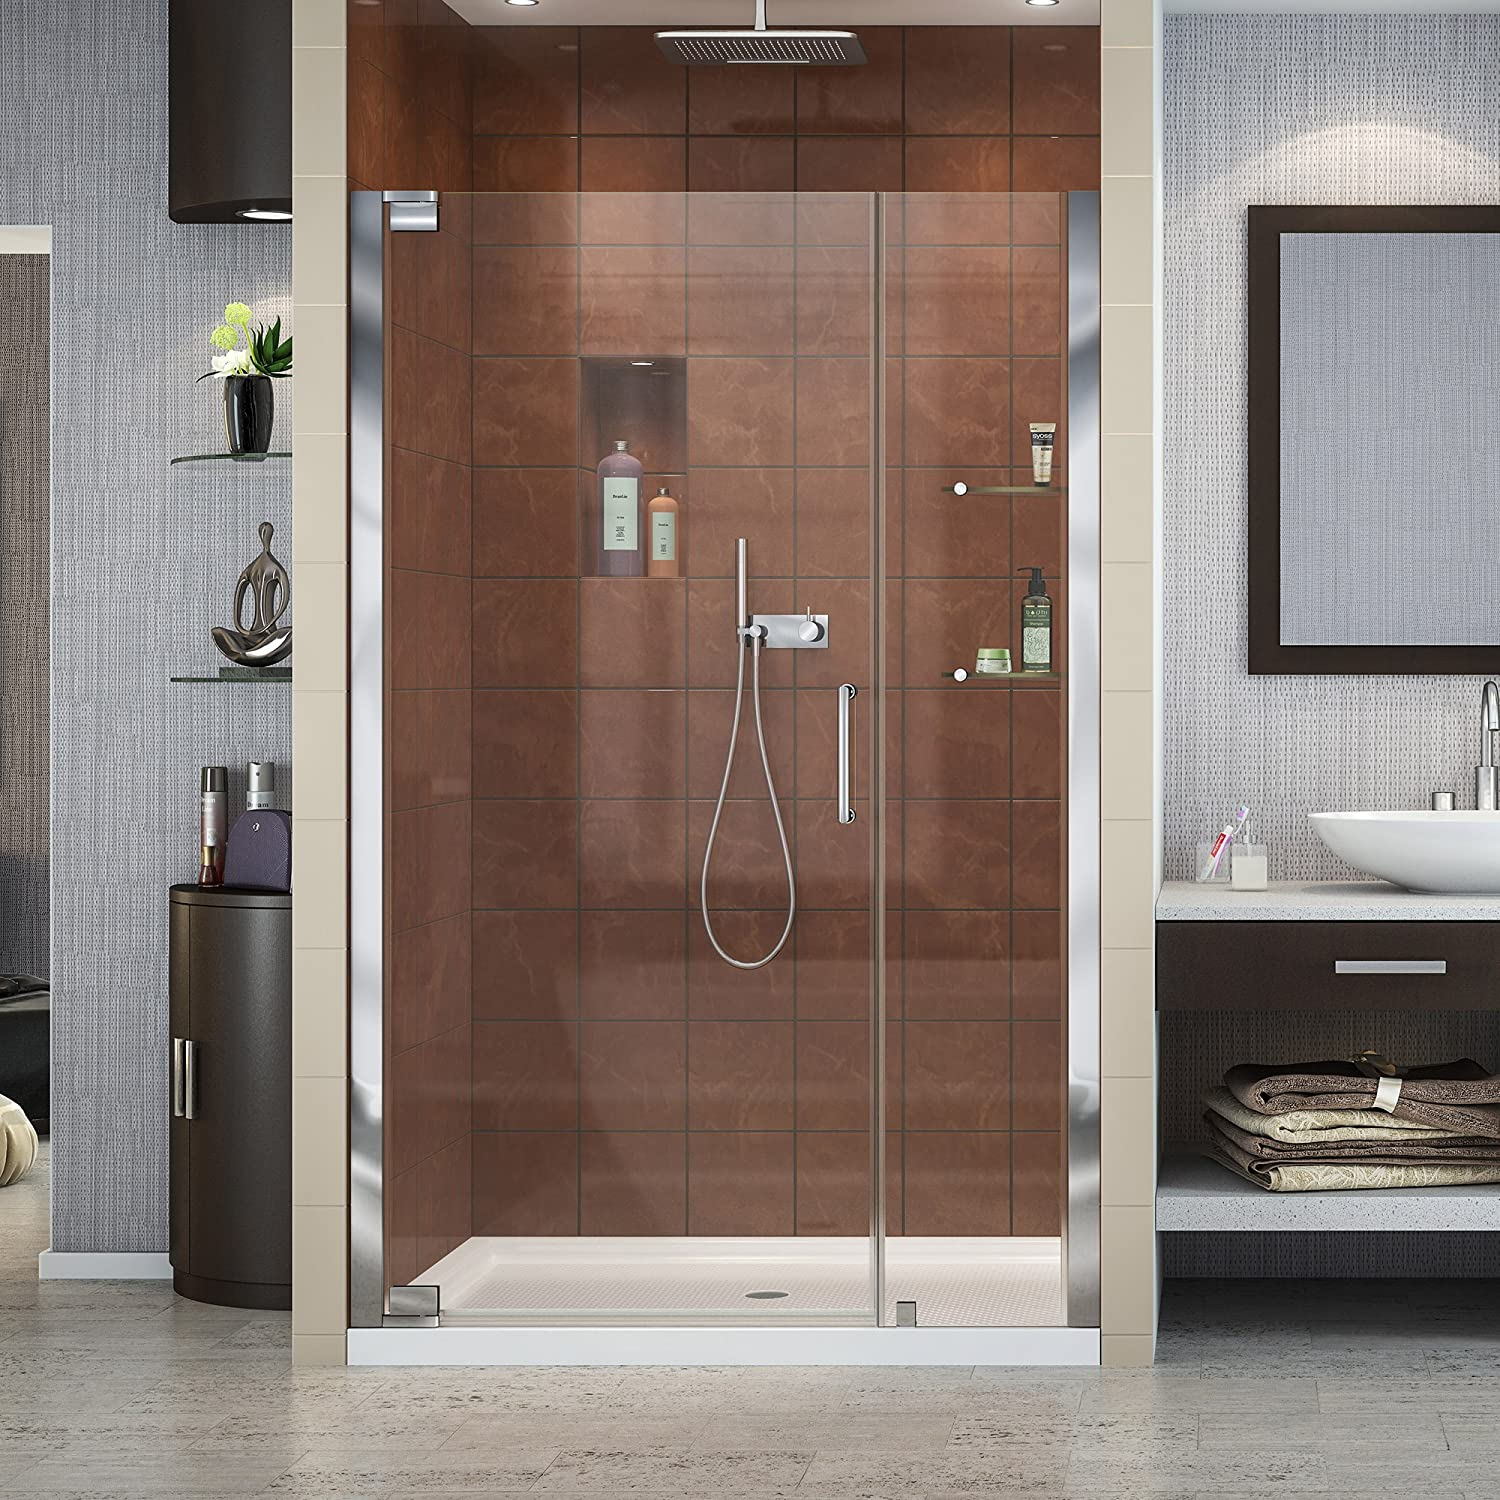 DreamLine Elegance 44 1 4 – 46 1 4 in. W x 72 in. H Frameless Pivot Shower Door in Chrome, SHDR-4144720-01